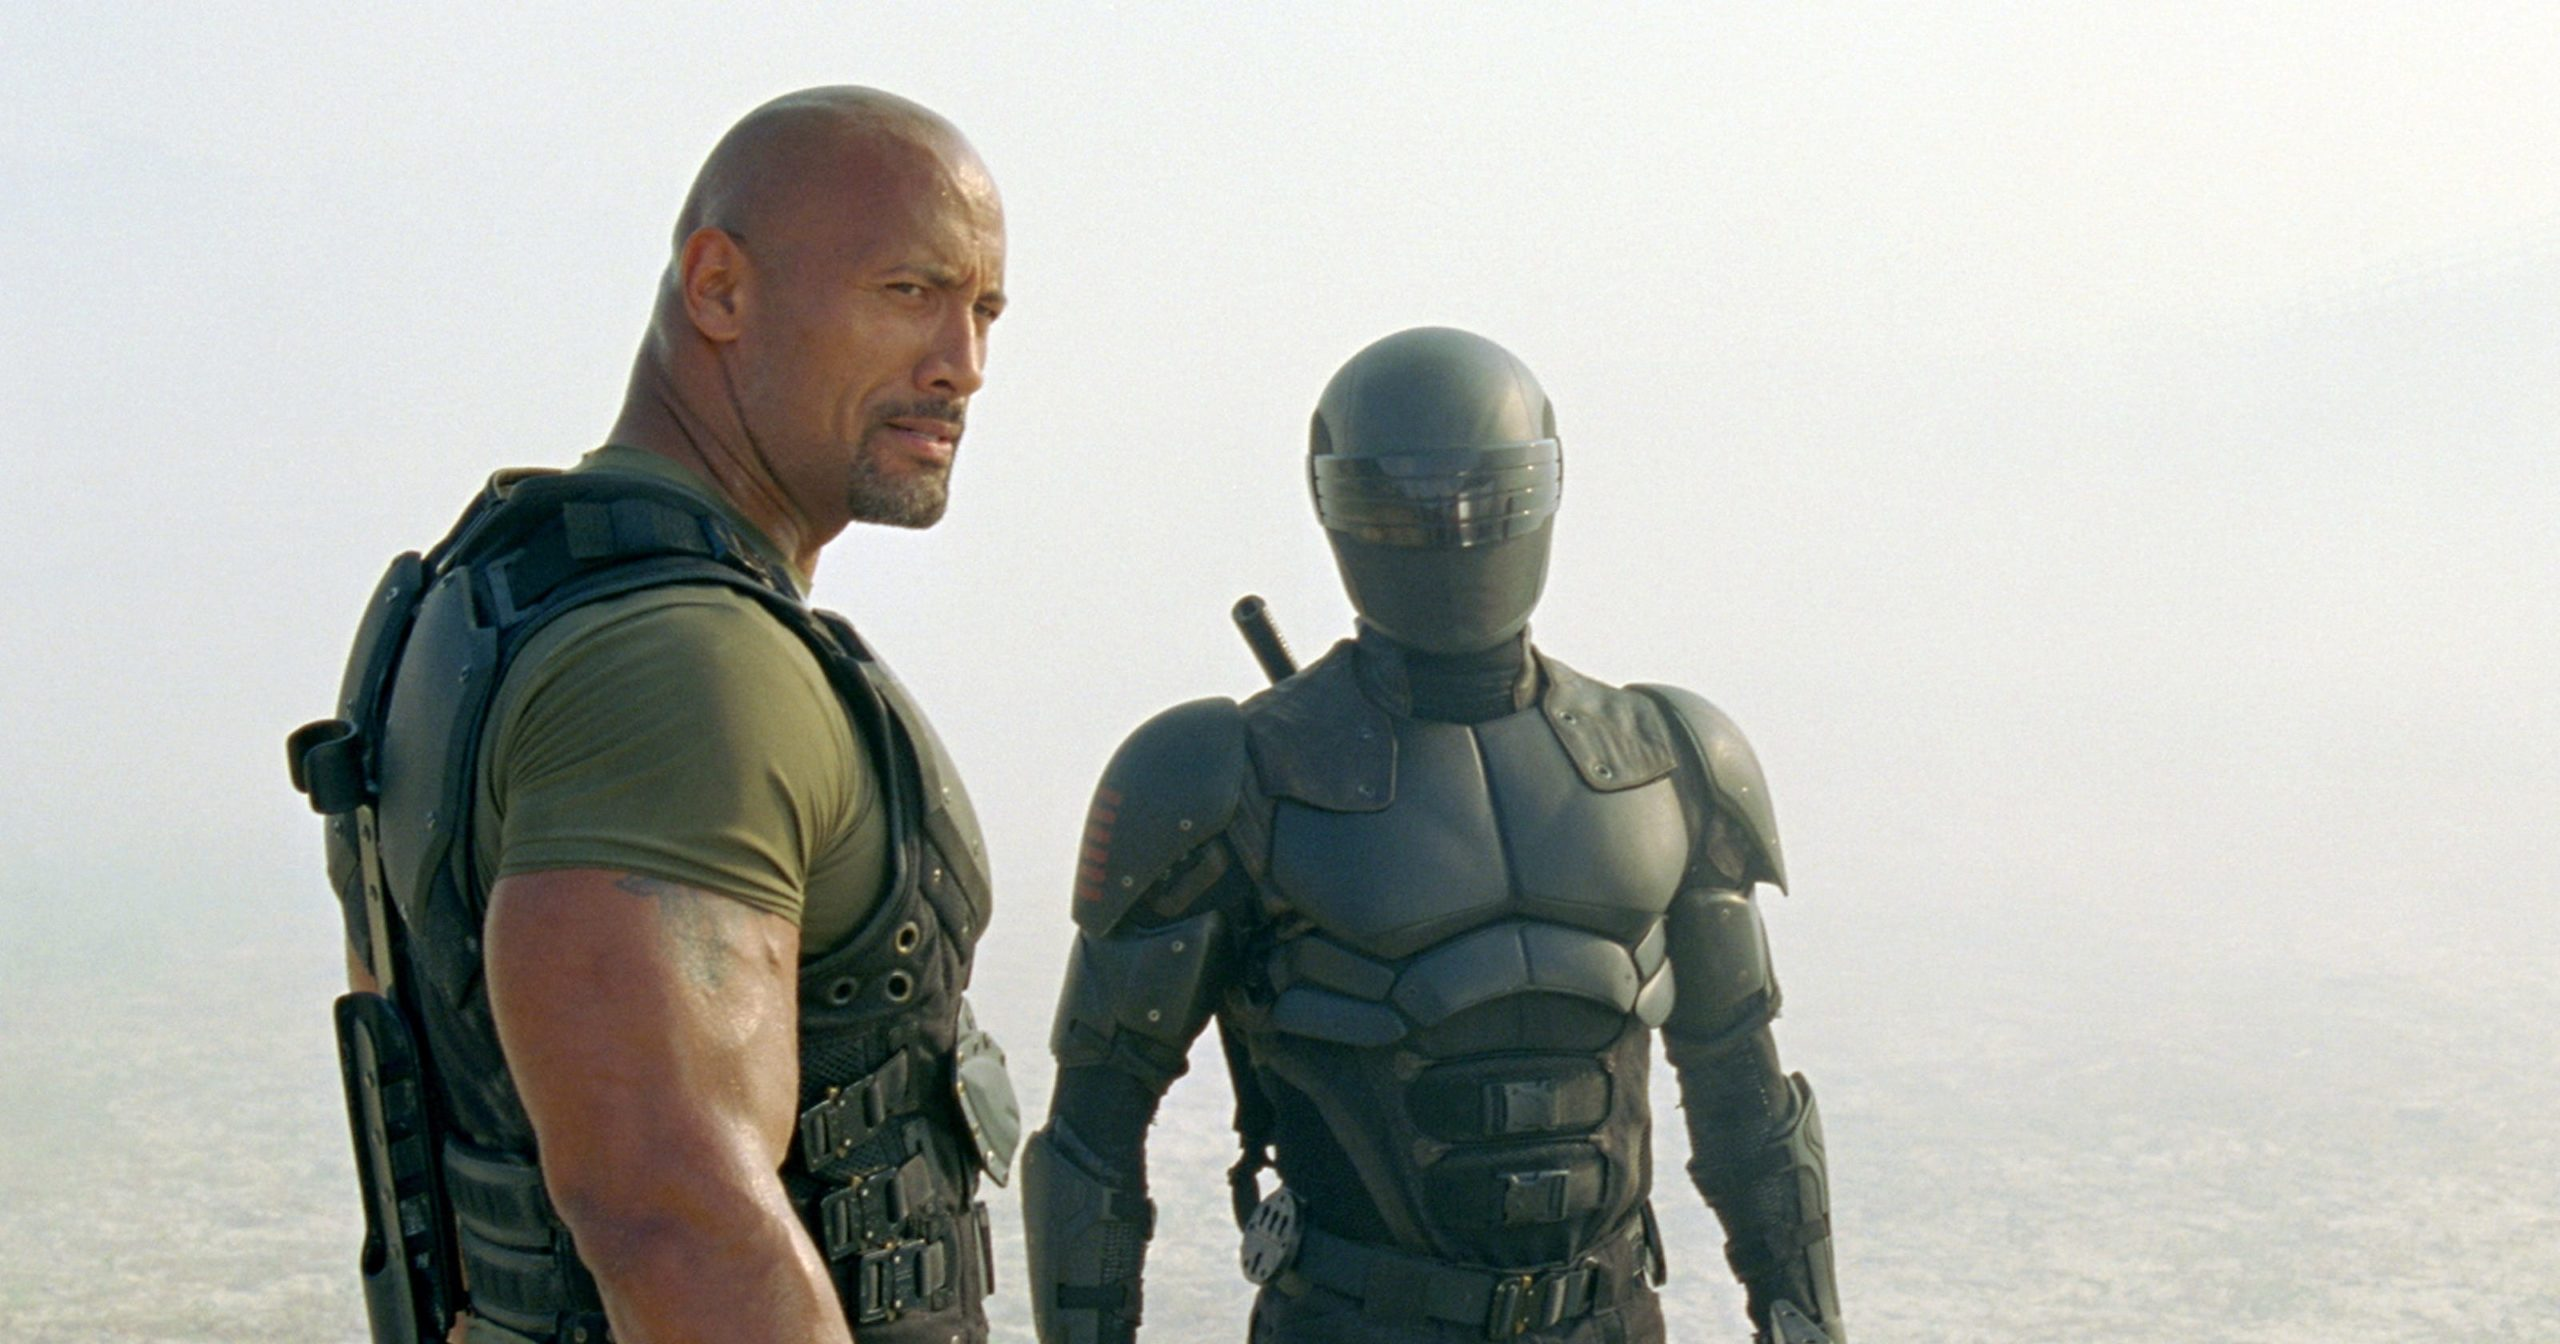 GI Joe 3 and Snake Eyes Spin-off Connection